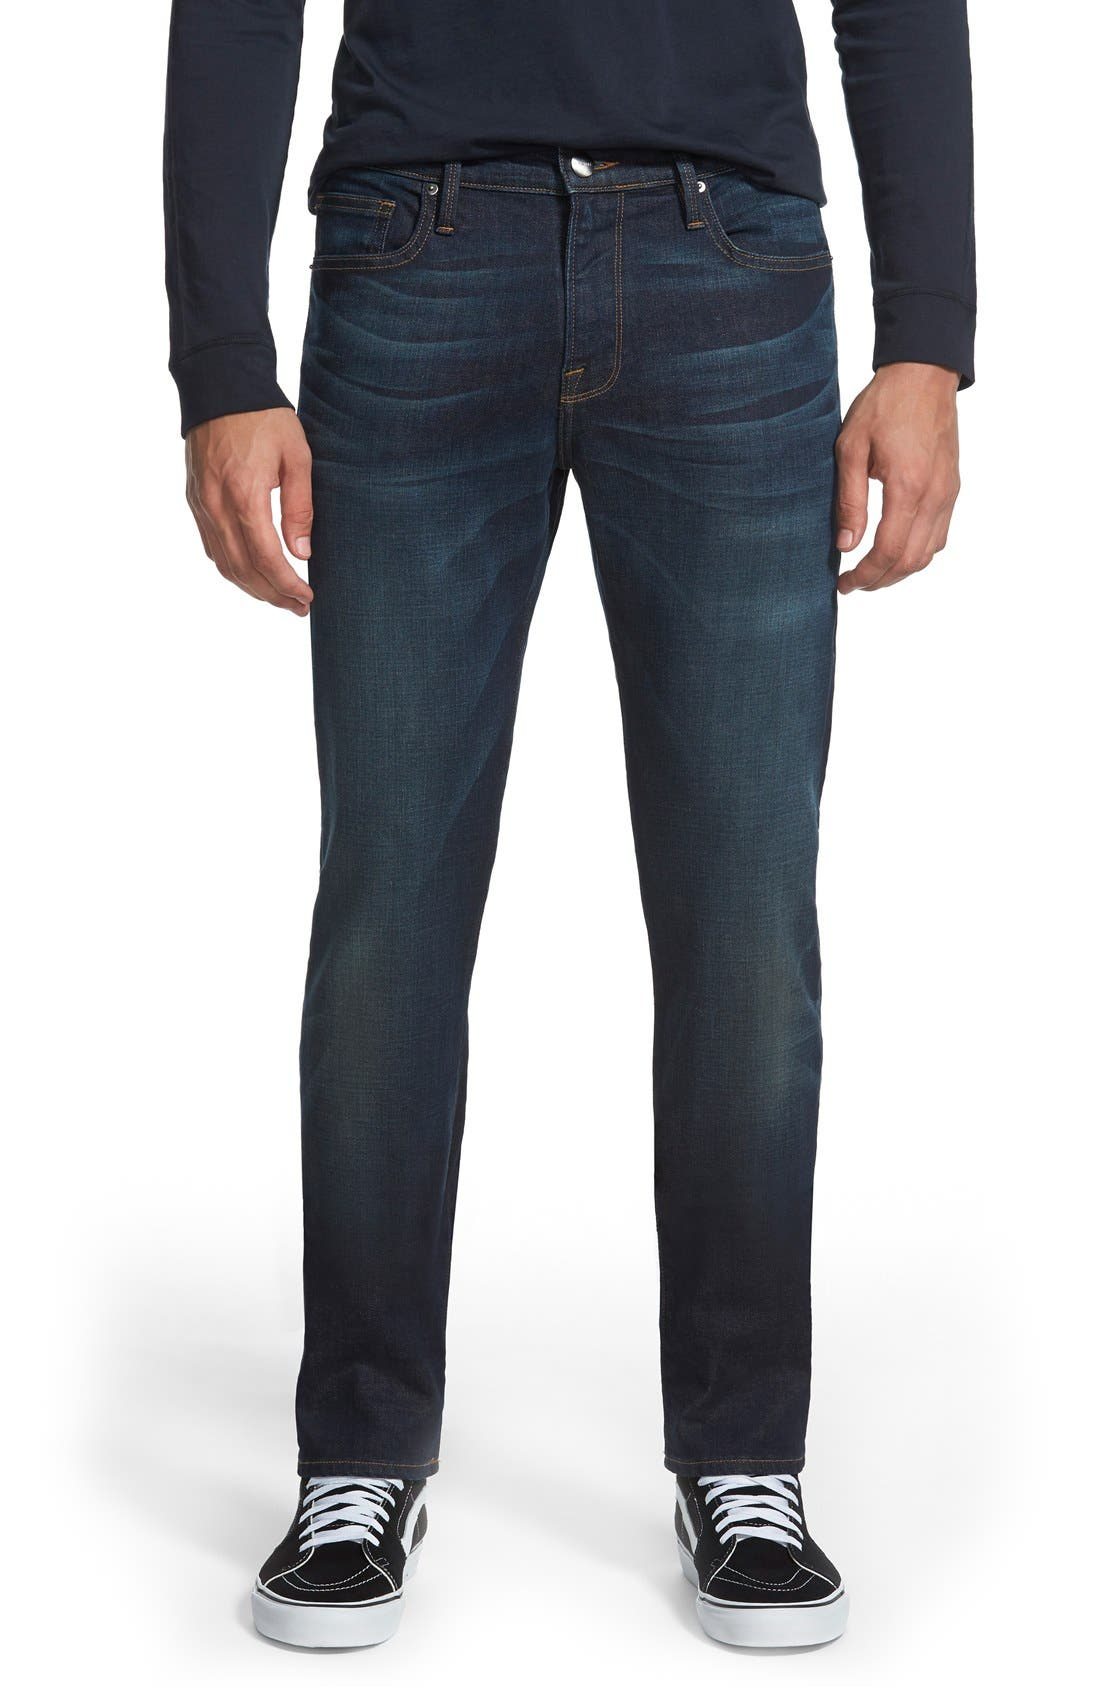 L'Homme Skinny Fit Jeans,                             Main thumbnail 1, color,